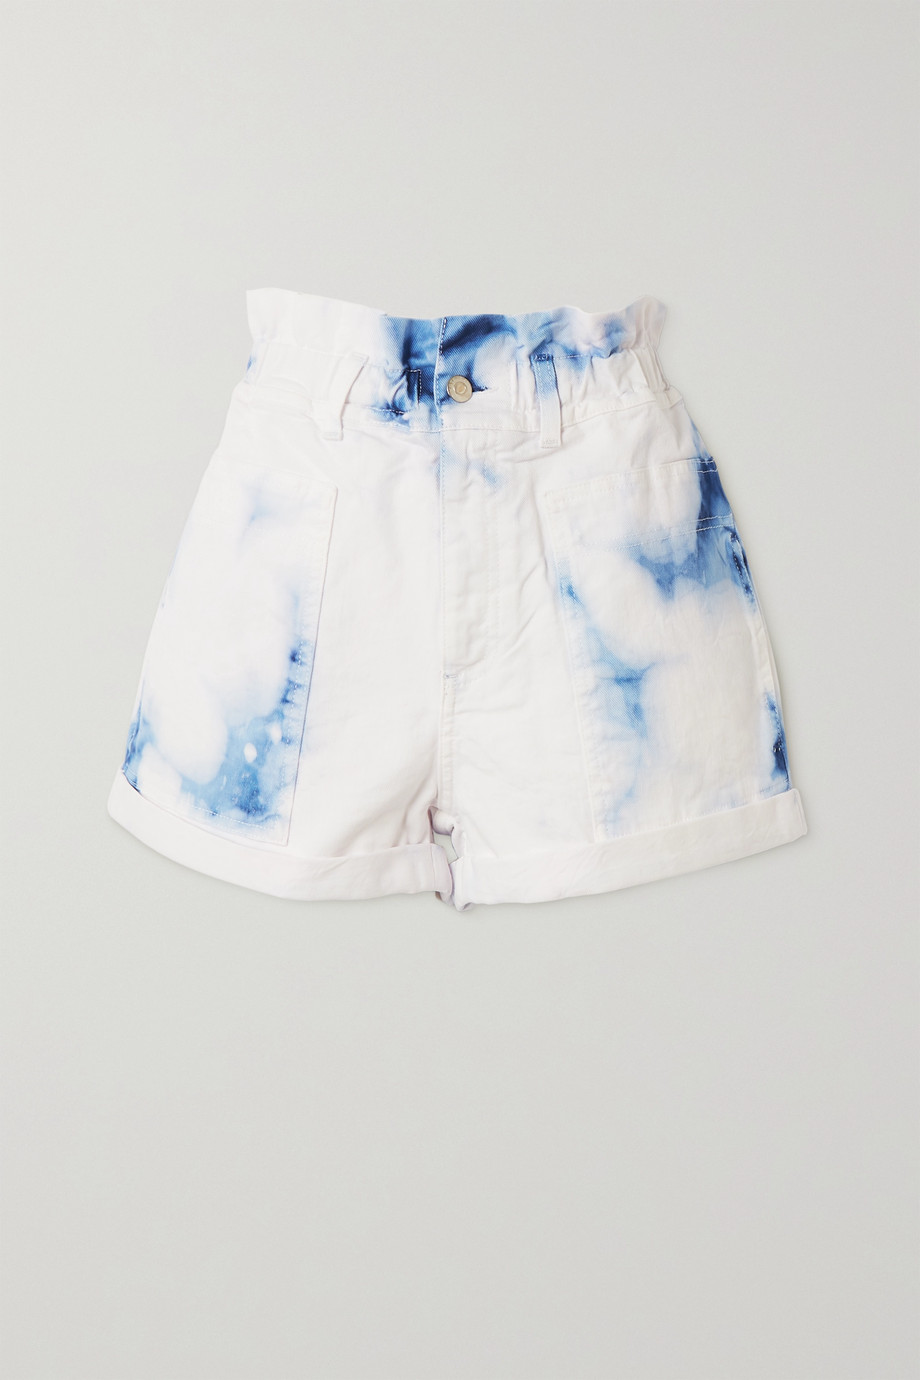 Stella McCartney Acid-wash denim shorts